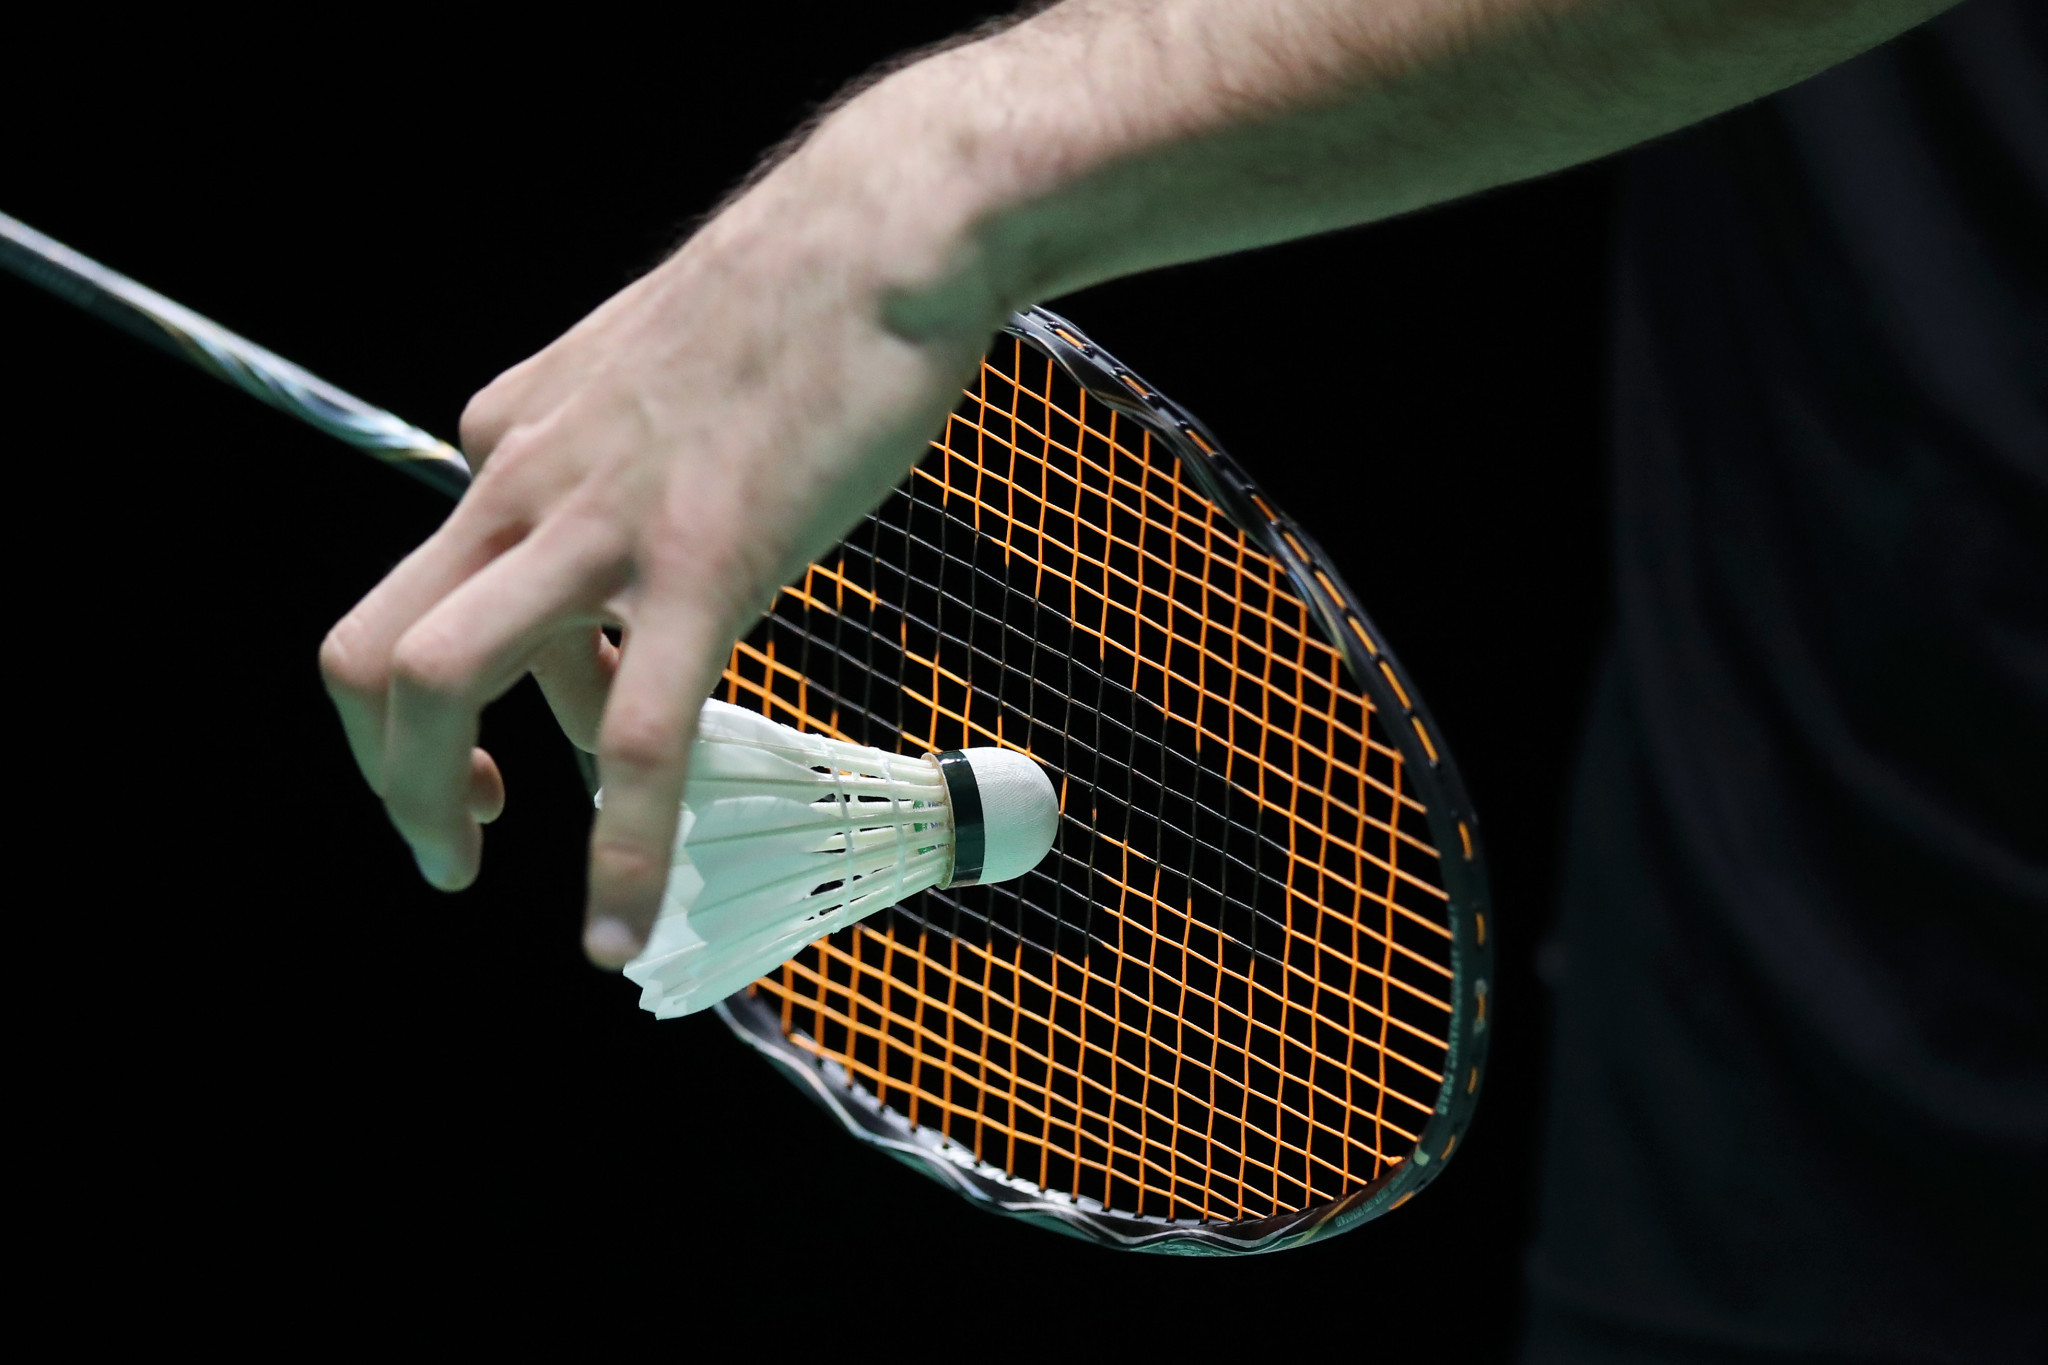 Denmark's Eipe out of European Badminton Championships with COVID-19, no other cases reported